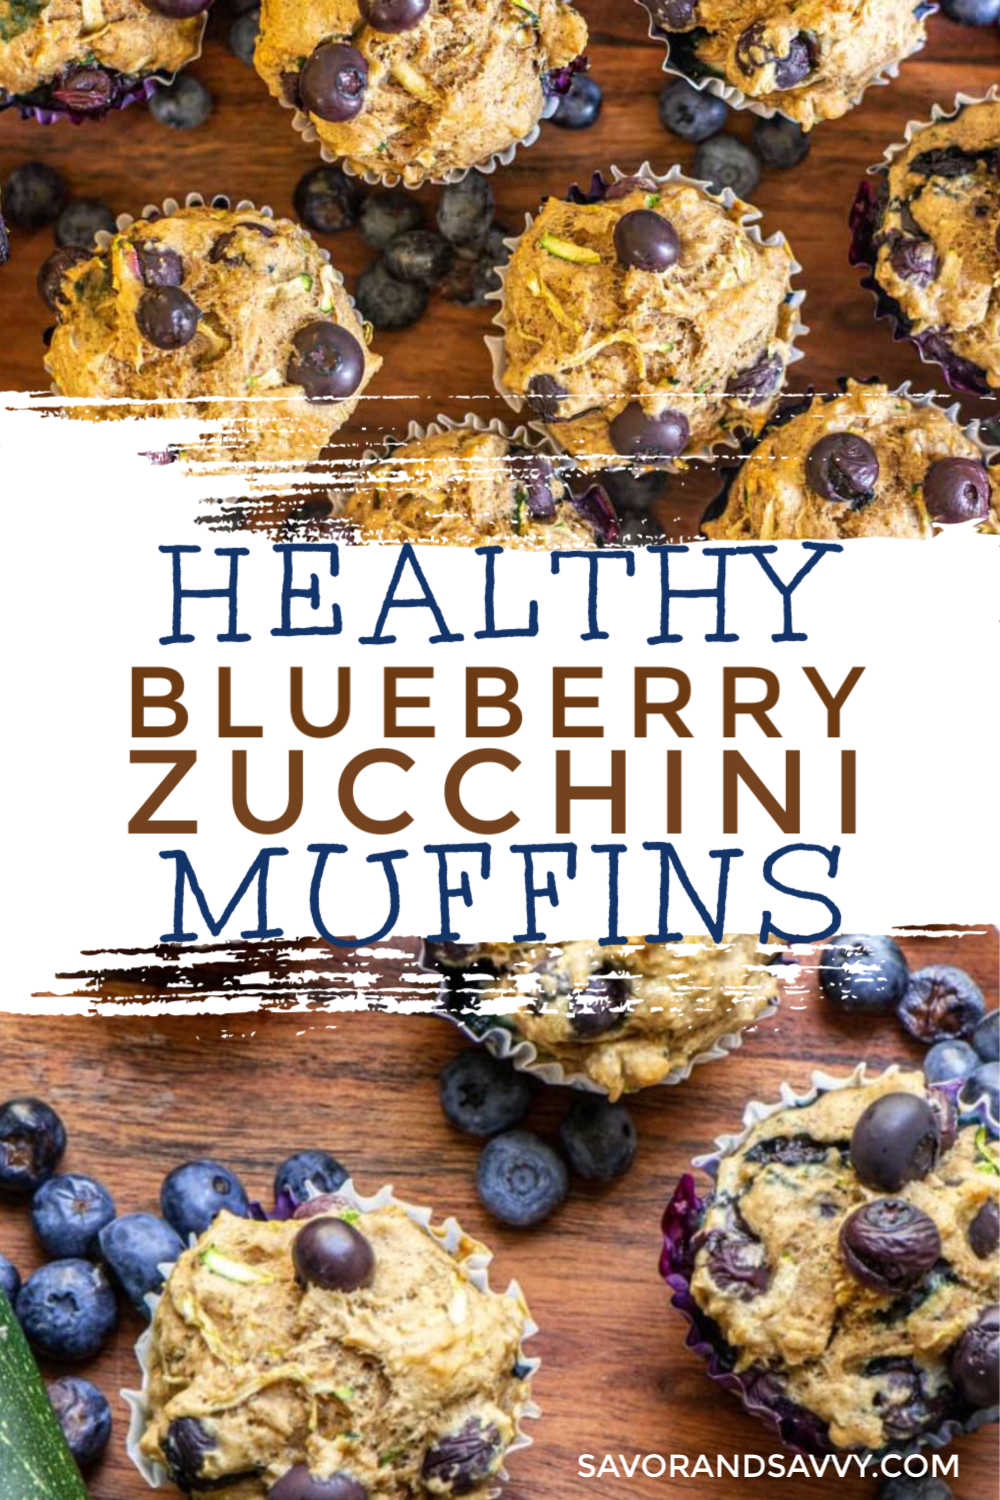 Healthy Blueberry Zucchini Muffins {25 Minutes}